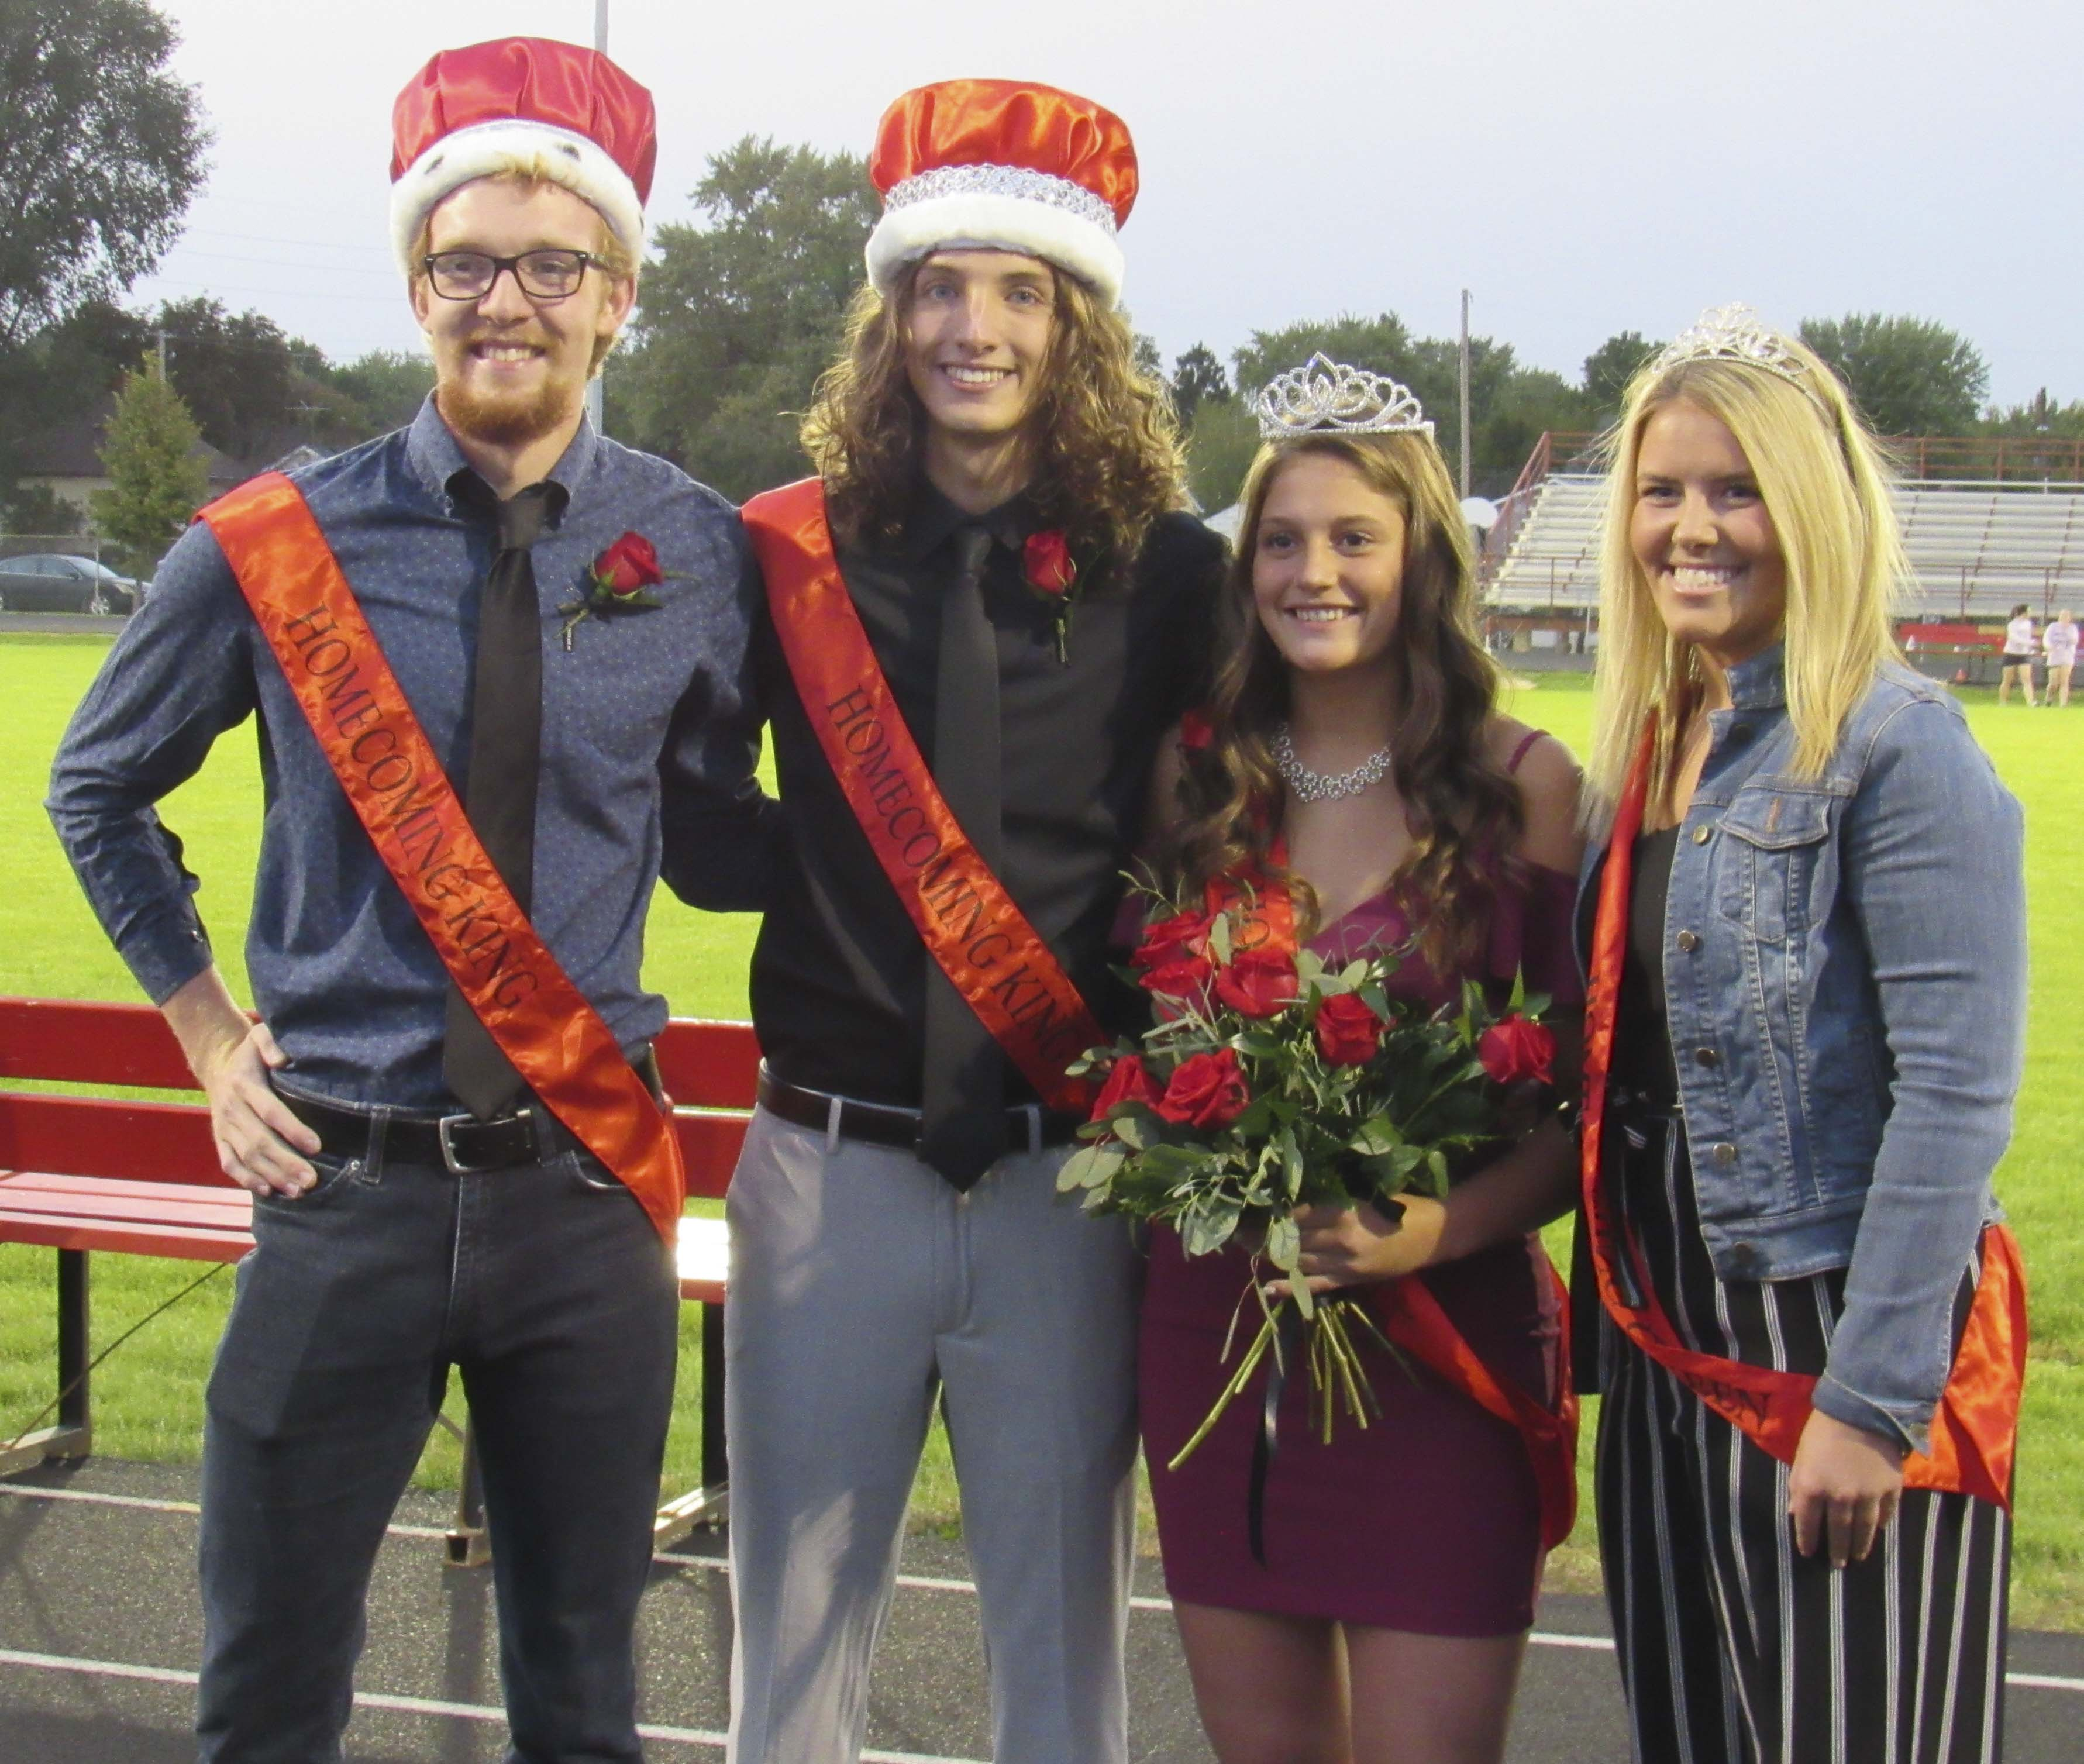 Monticello Homecoming kings and queens from the past two years, from left: Carter Cruise, 2019 king; Caden Ungs, 2020 king; DeLainy Fellinger, 2020 queen; and Lizzie Petersen, 2019 queen.